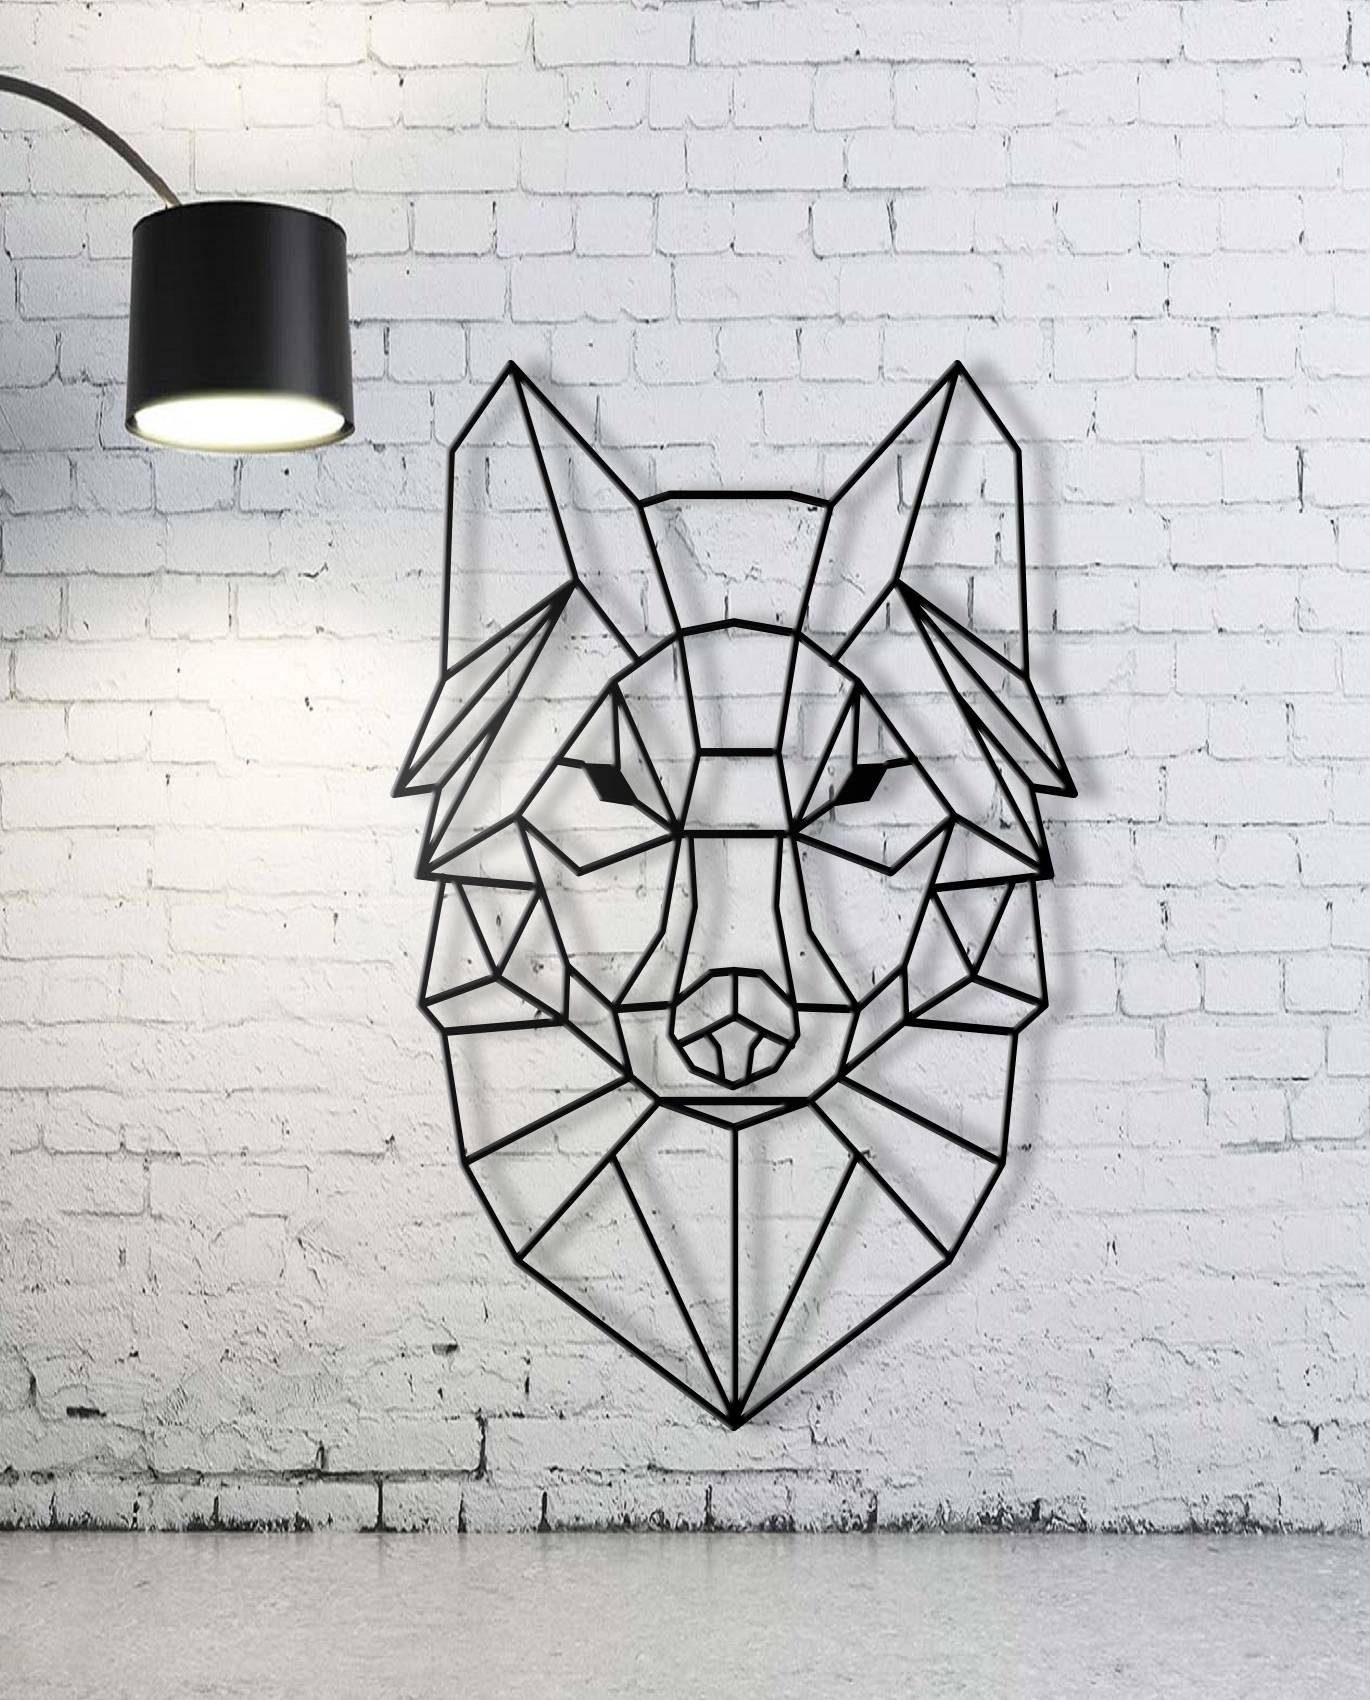 Custom Animal Geometric Wall Art, Wall Art,custom Sign, Family Intended For Most Up To Date Animal Metal Wall Art (View 4 of 20)